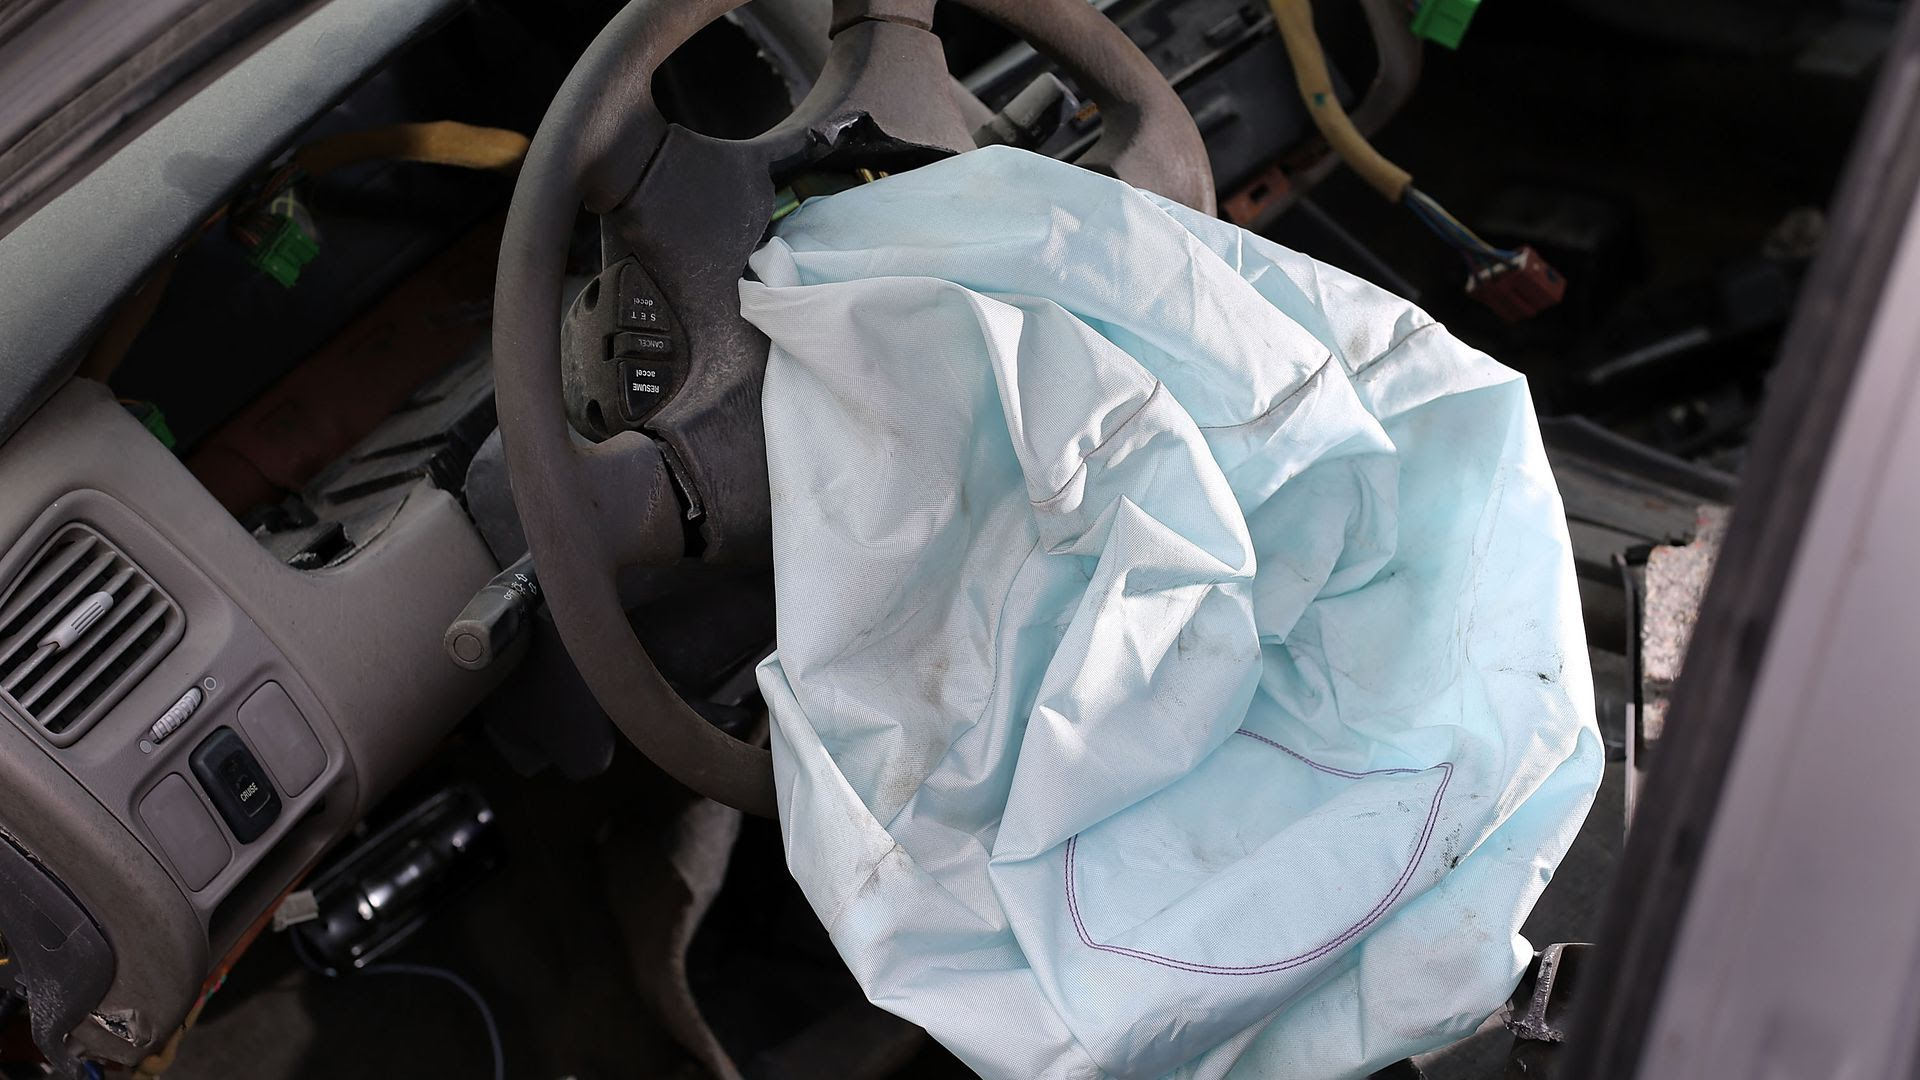 A deployed airbag.